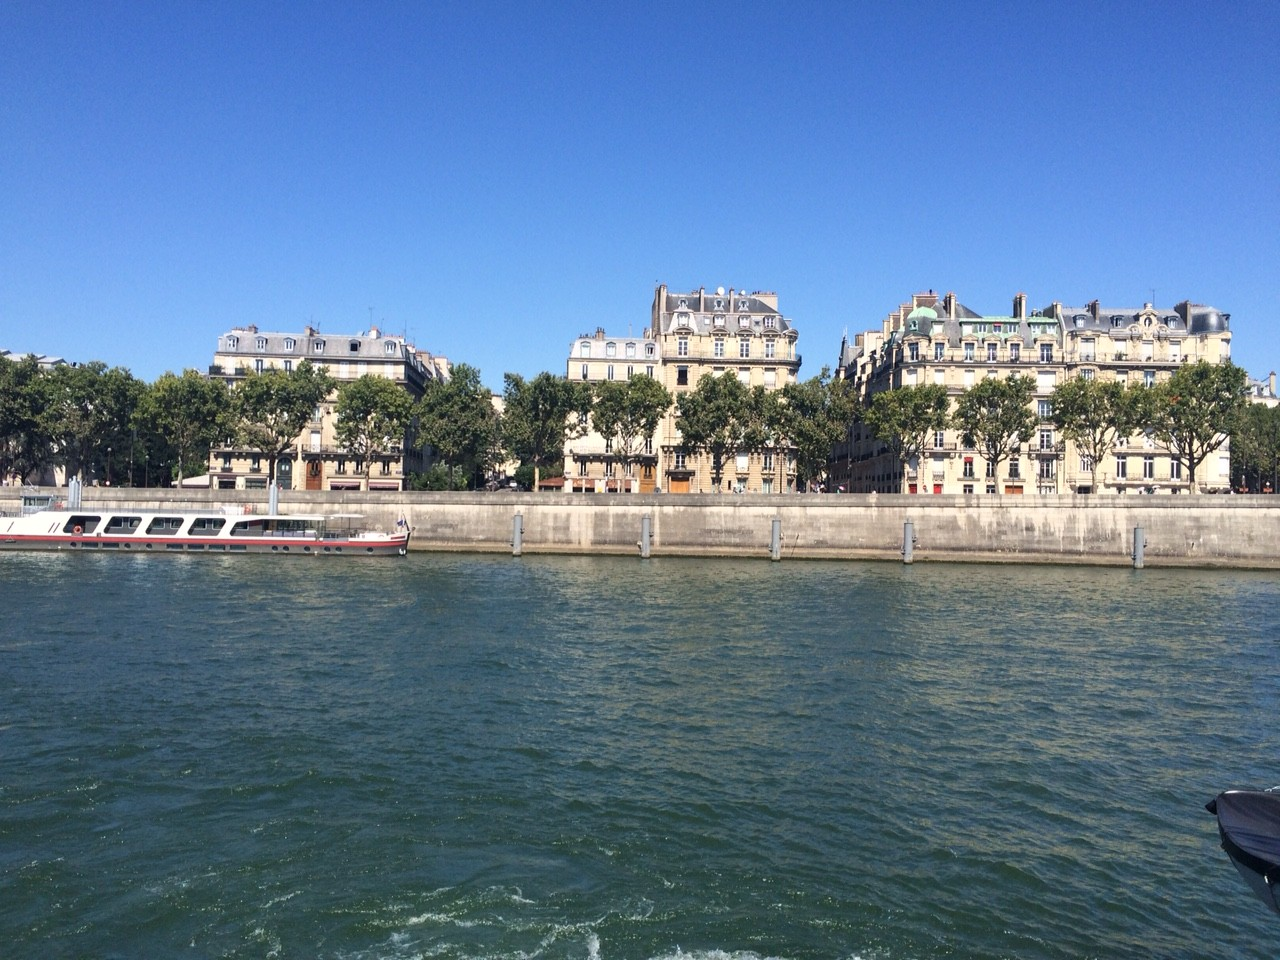 Looking over Seine to the right bank.